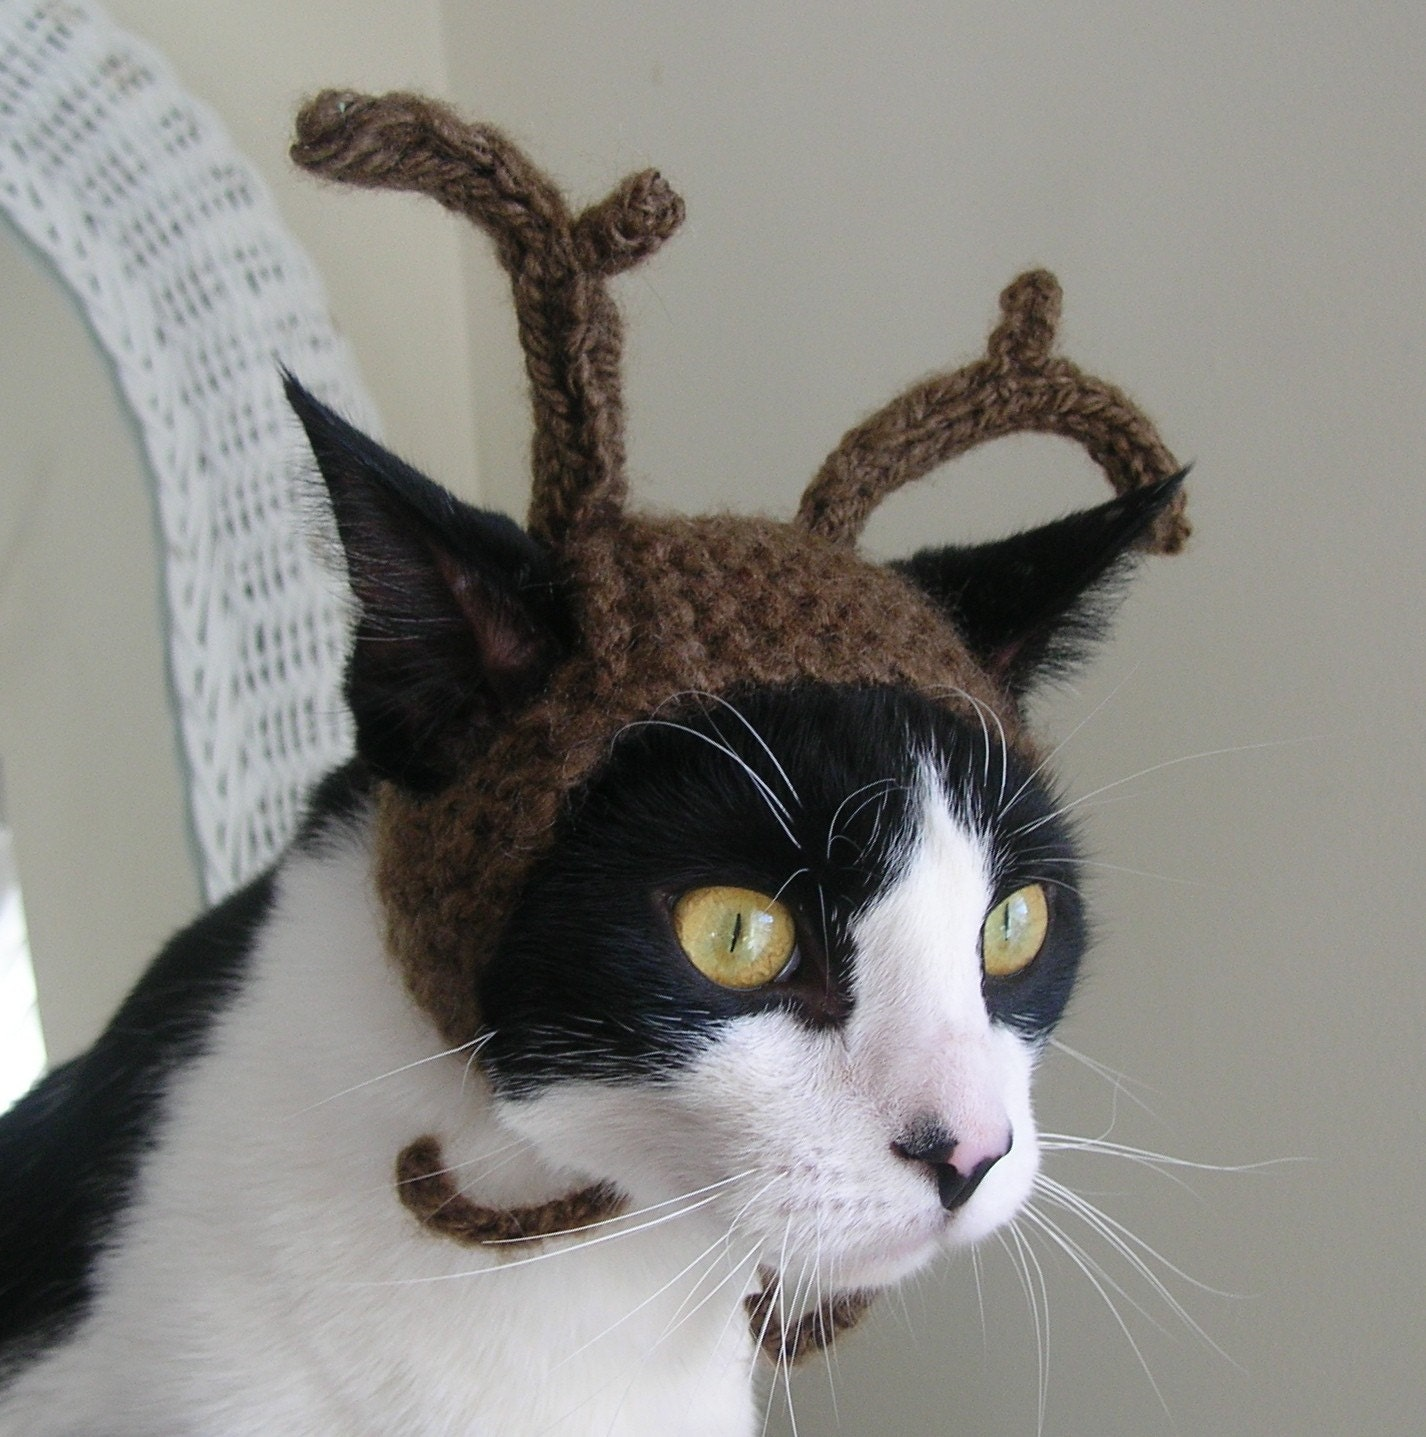 Knitting Pattern For Dog Reindeer Hat : The Reindeer Cat Hat by scooterKnits on Etsy